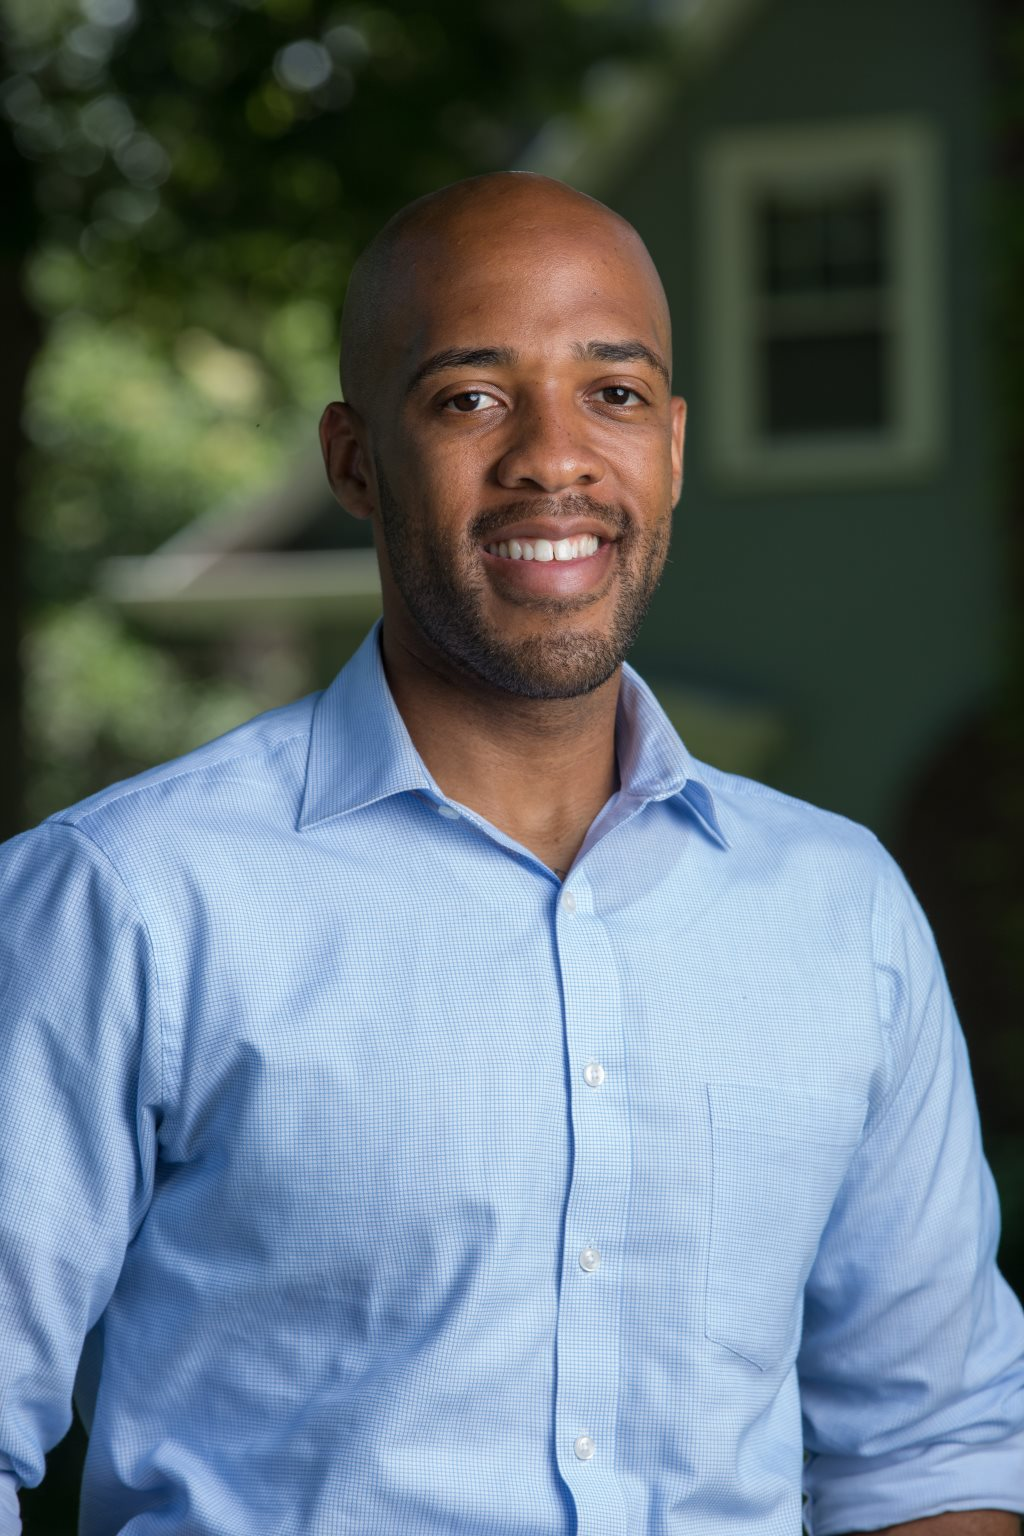 Mandela Barnes Wins 2018 DPW Convention Straw Poll with 80.9% of the Vote